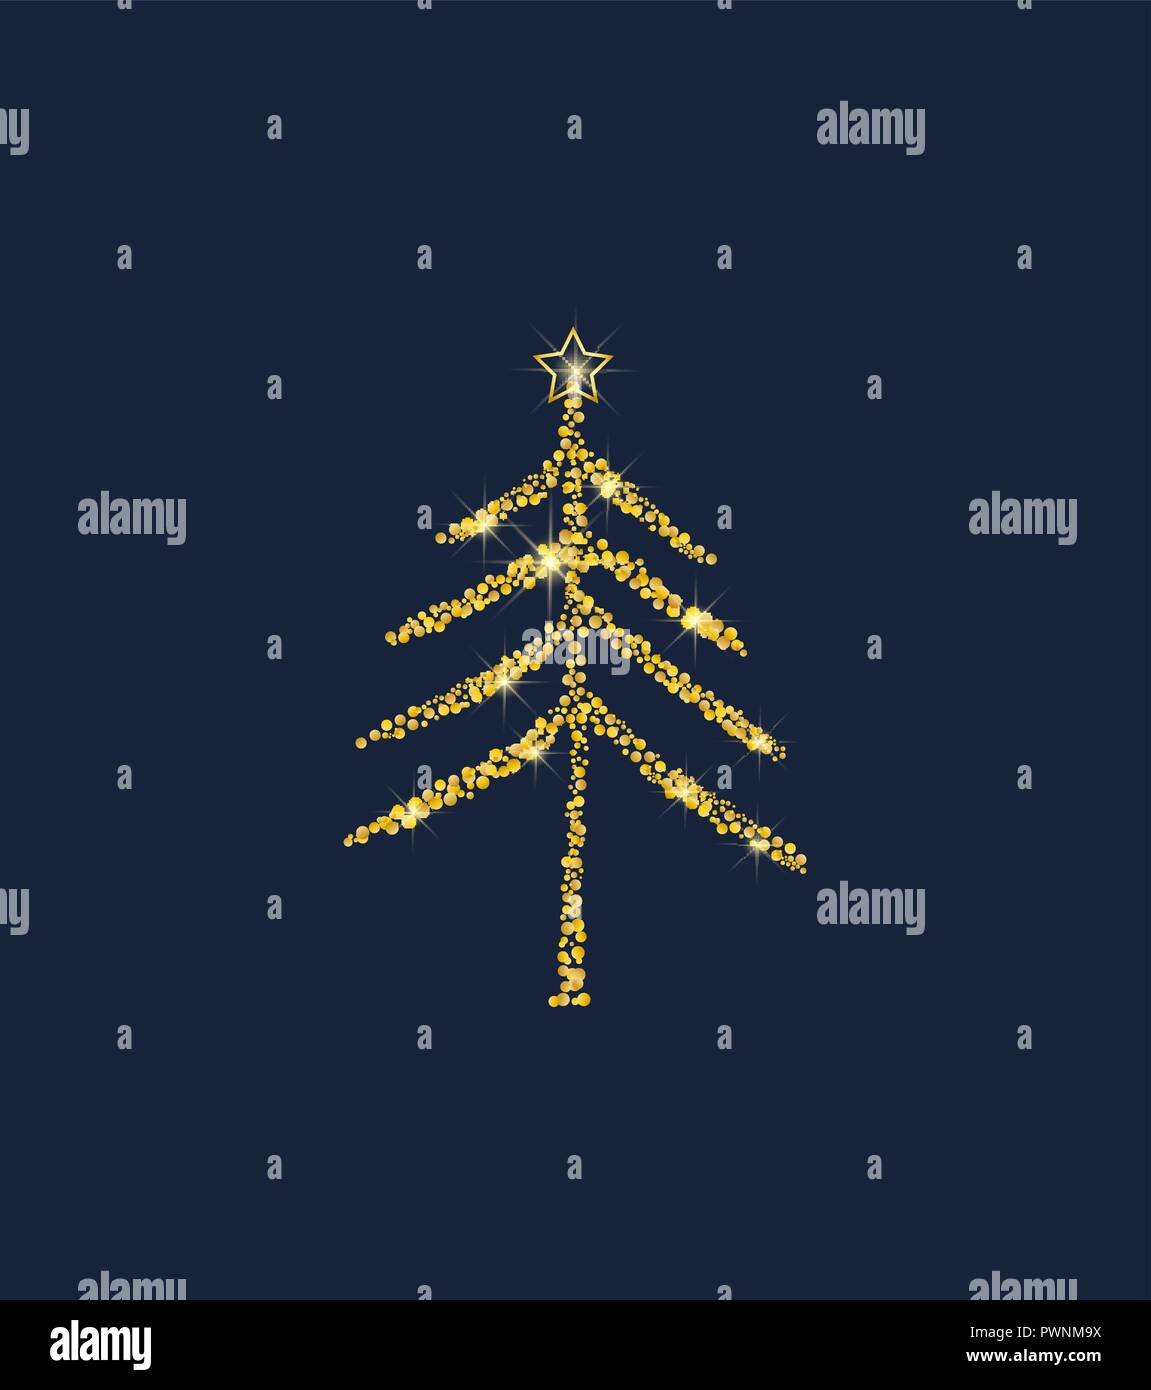 Golden Christmas Tree Stock Vector Art Illustration Vector Image